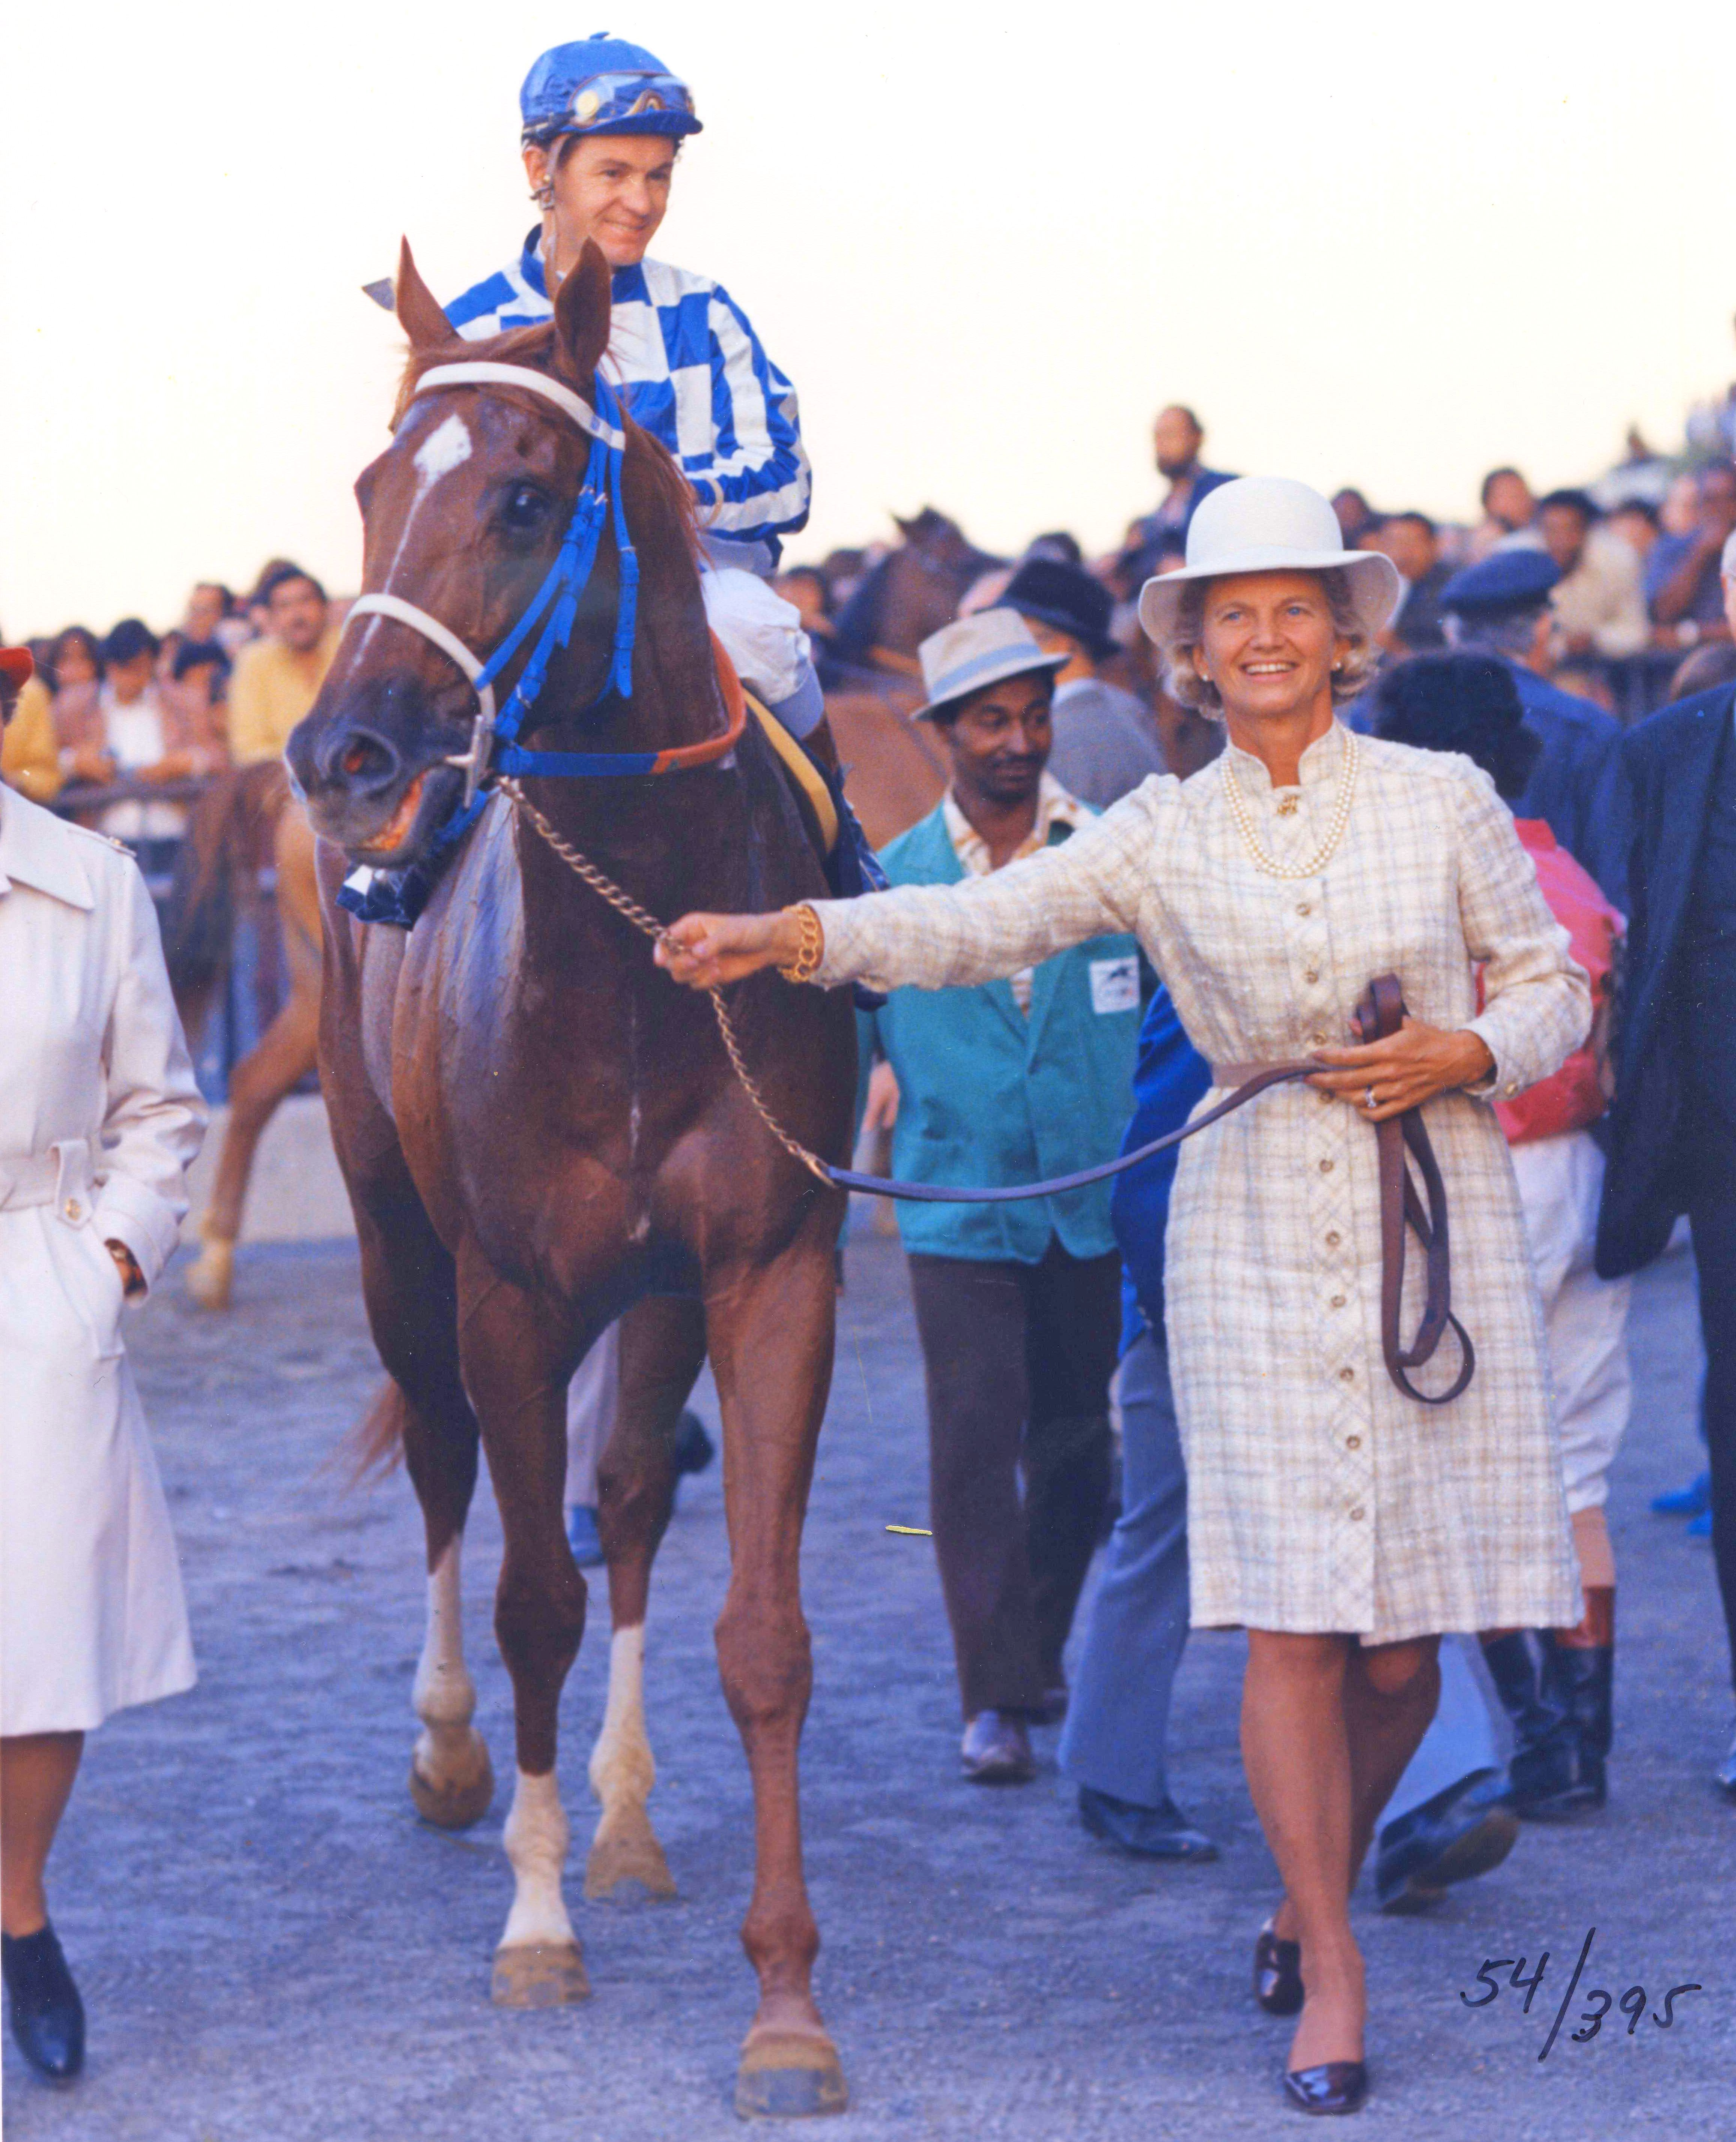 Penny Chenery leads Secretariat (Turcotte up) into the winner's circle after winning the Man o' War Stakes at Aqueduct, October 1973 (NYRA/Bob Coglianese/Museum Collection)